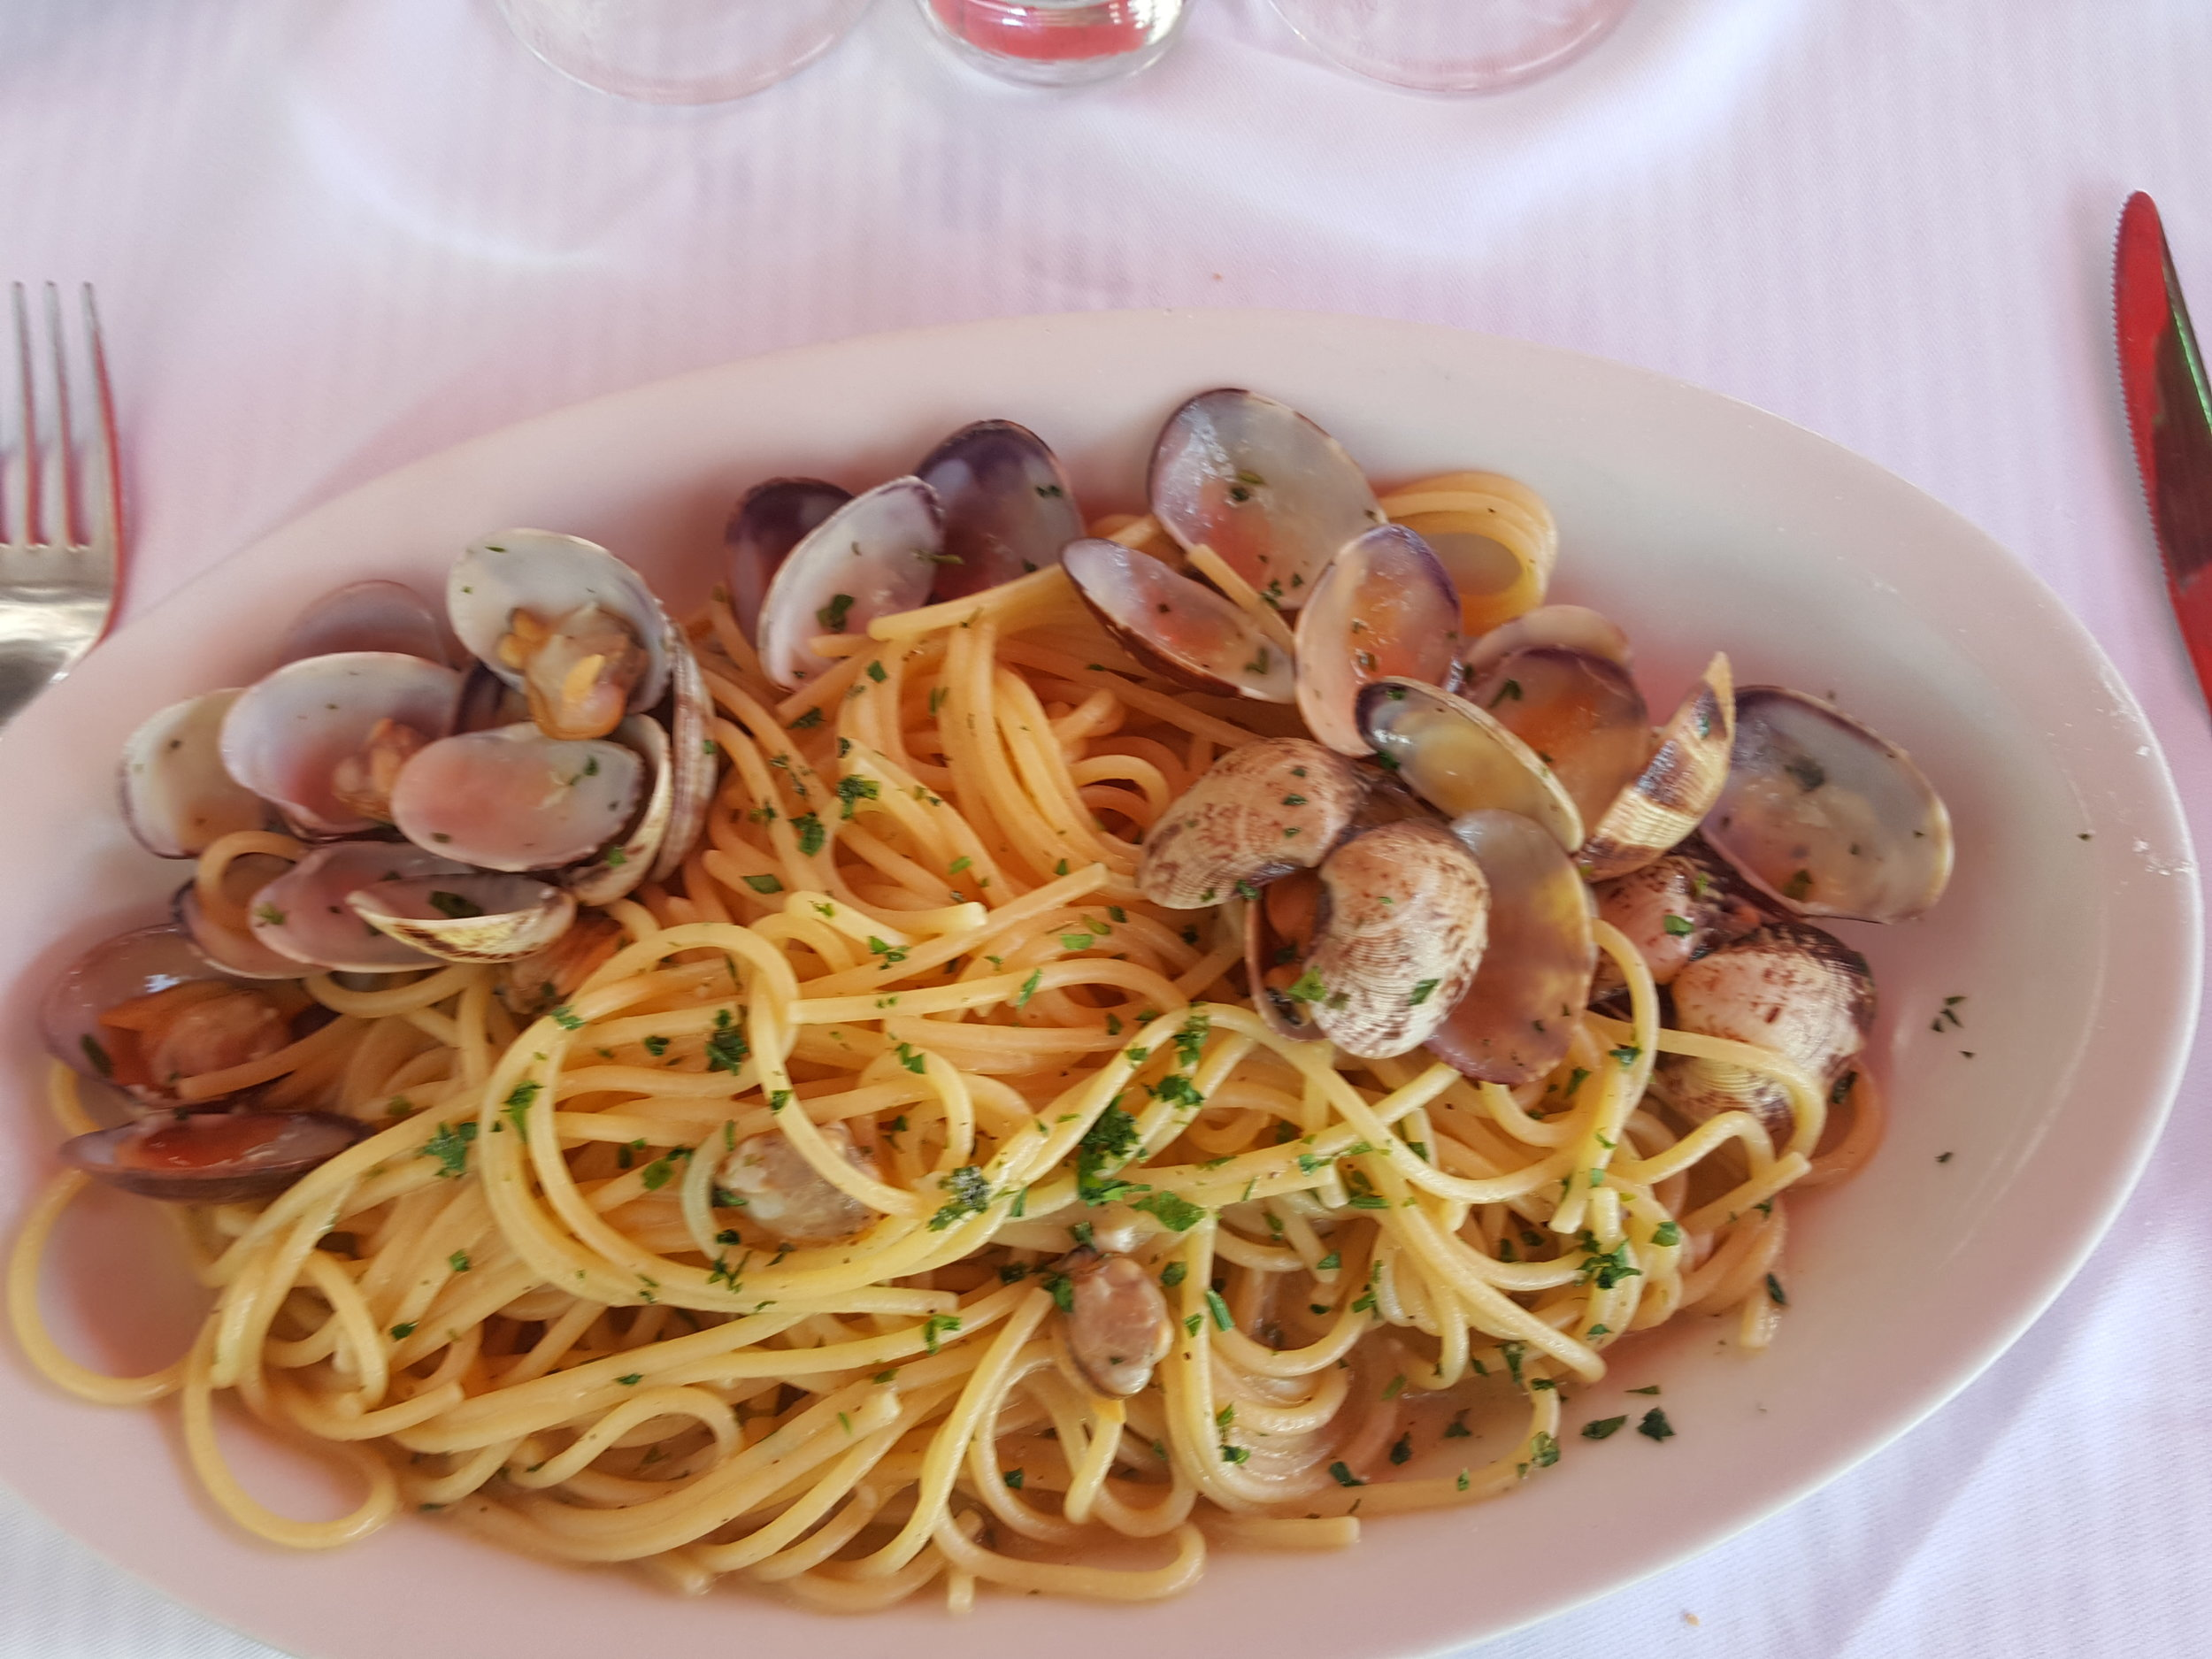 Spaghetti alla (the freshest you can get) Vongole!